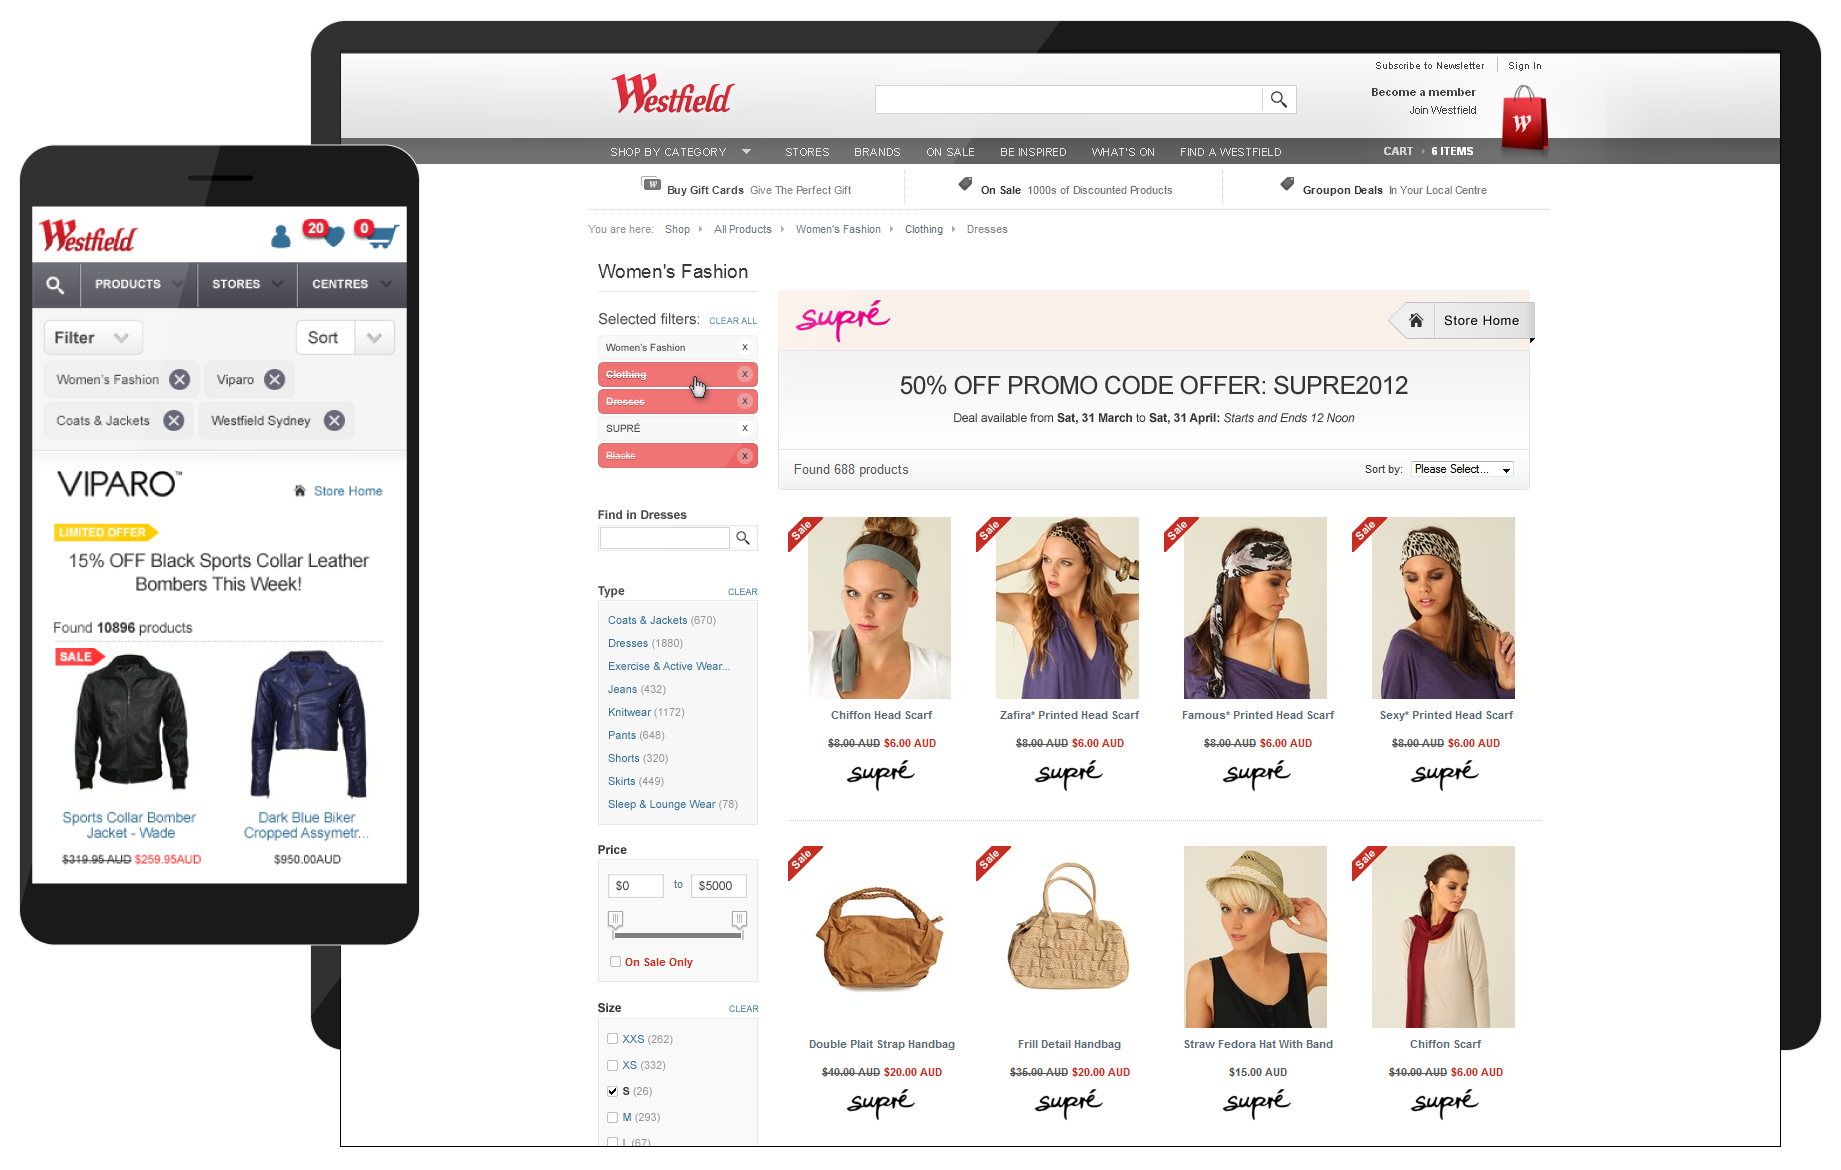 Westfield Product Finder